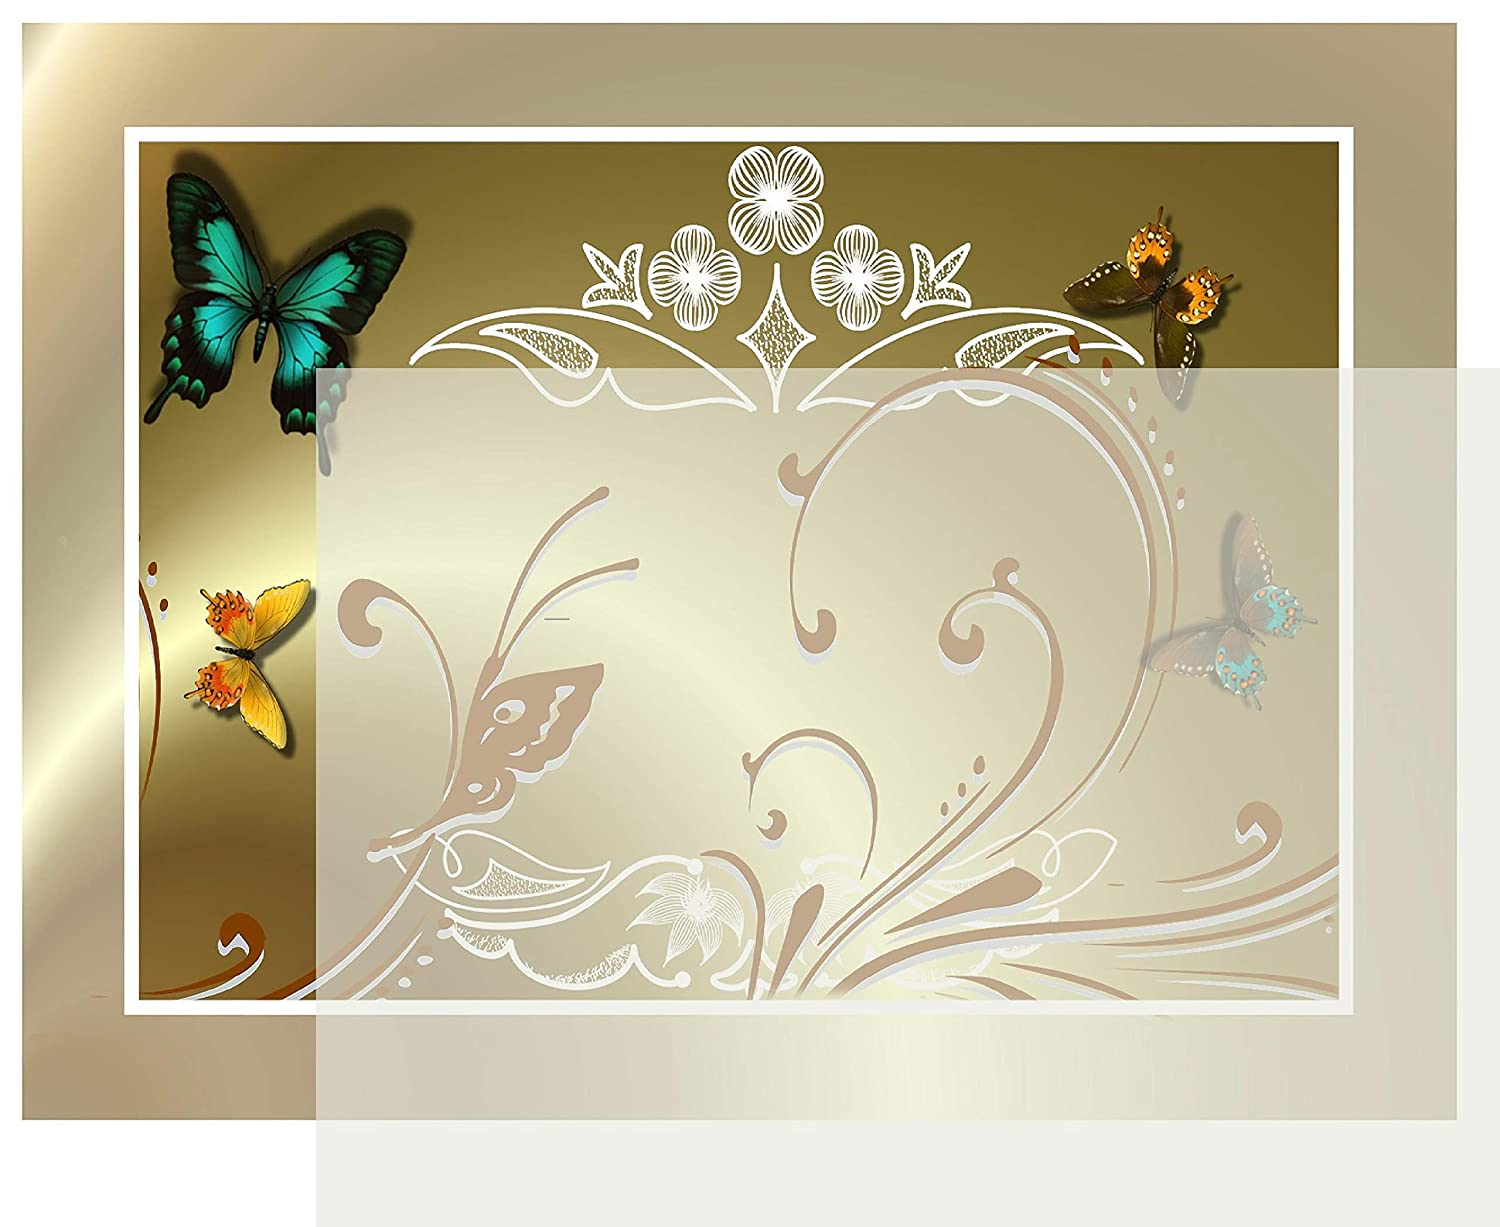 17 lb//pound Light Weight Fine Quality Paper Not a Clear Transparent Tracing Photo|Card|Frame Size 4X6 Inches 4 X 6 Fun or Formal Use 25 Soft Off-White Translucent 17# Thin Sheets